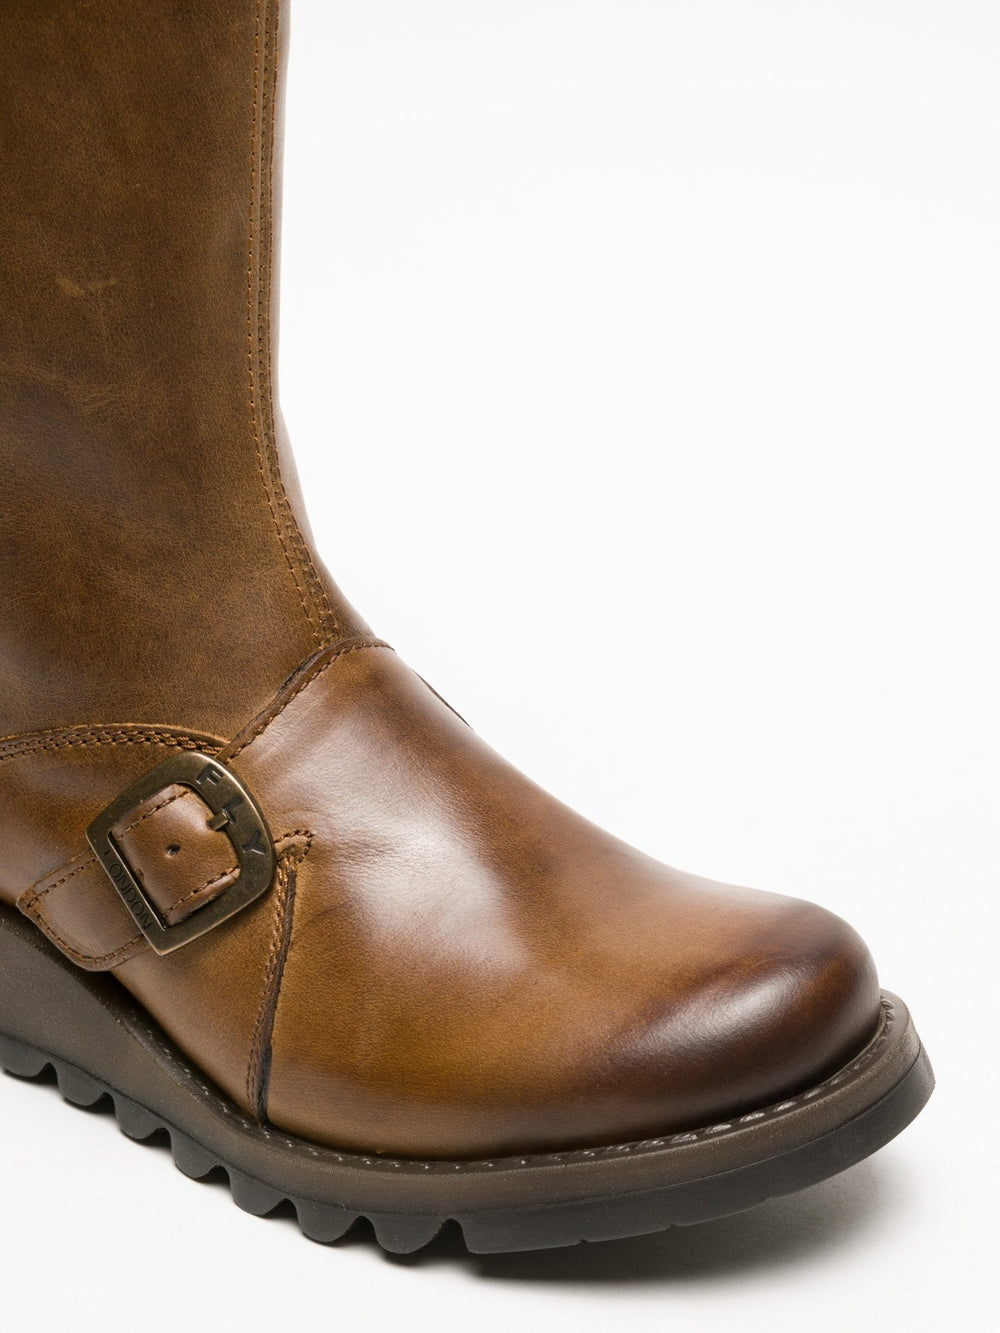 Buckle Boots MES 2 CAMEL